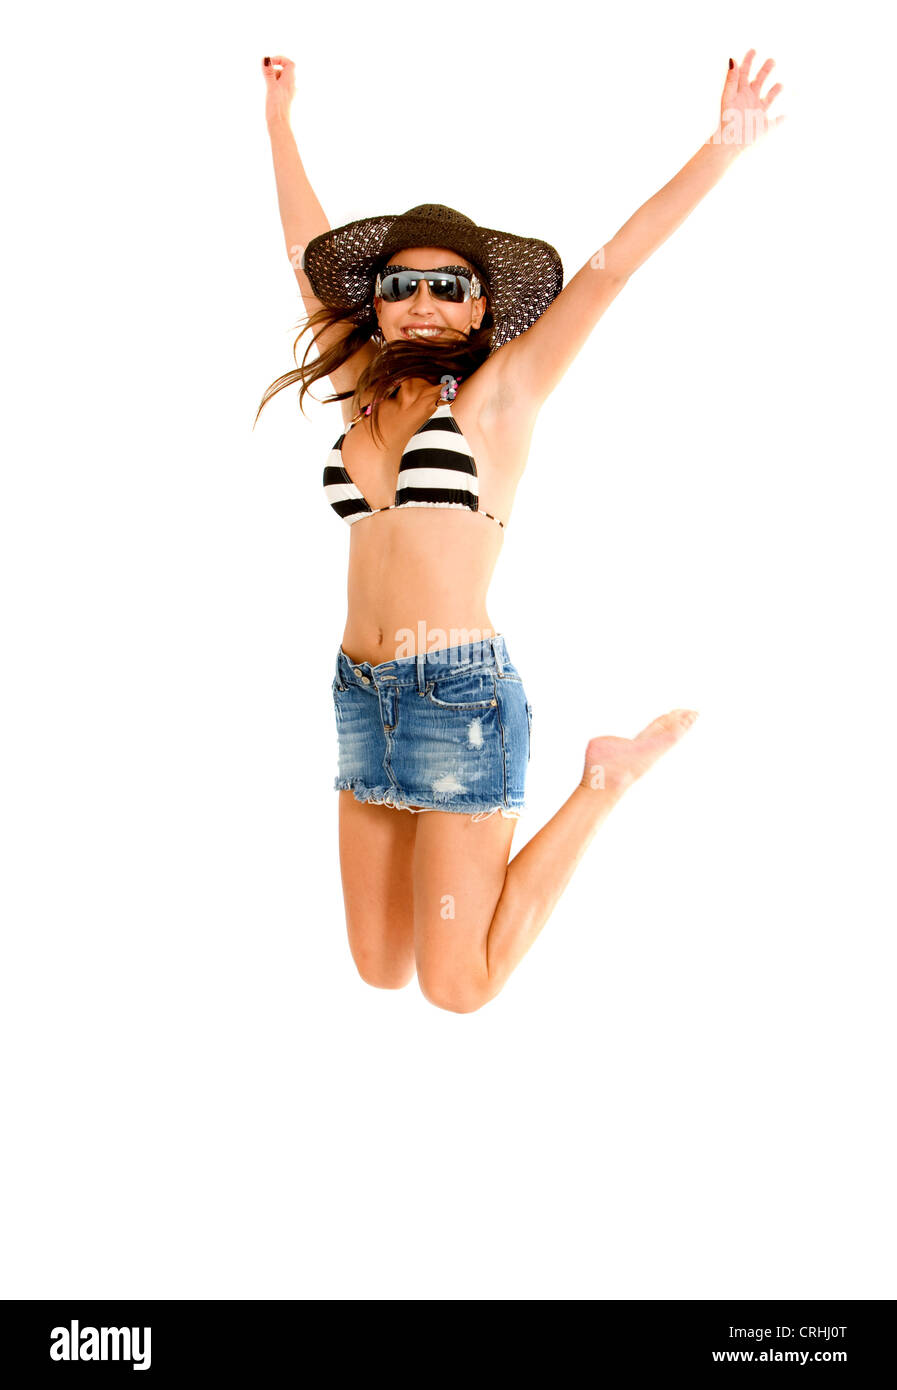 young woman in bikini, jeans miniskirt, sunglasses and sunhat, cutting a caper - Stock Image